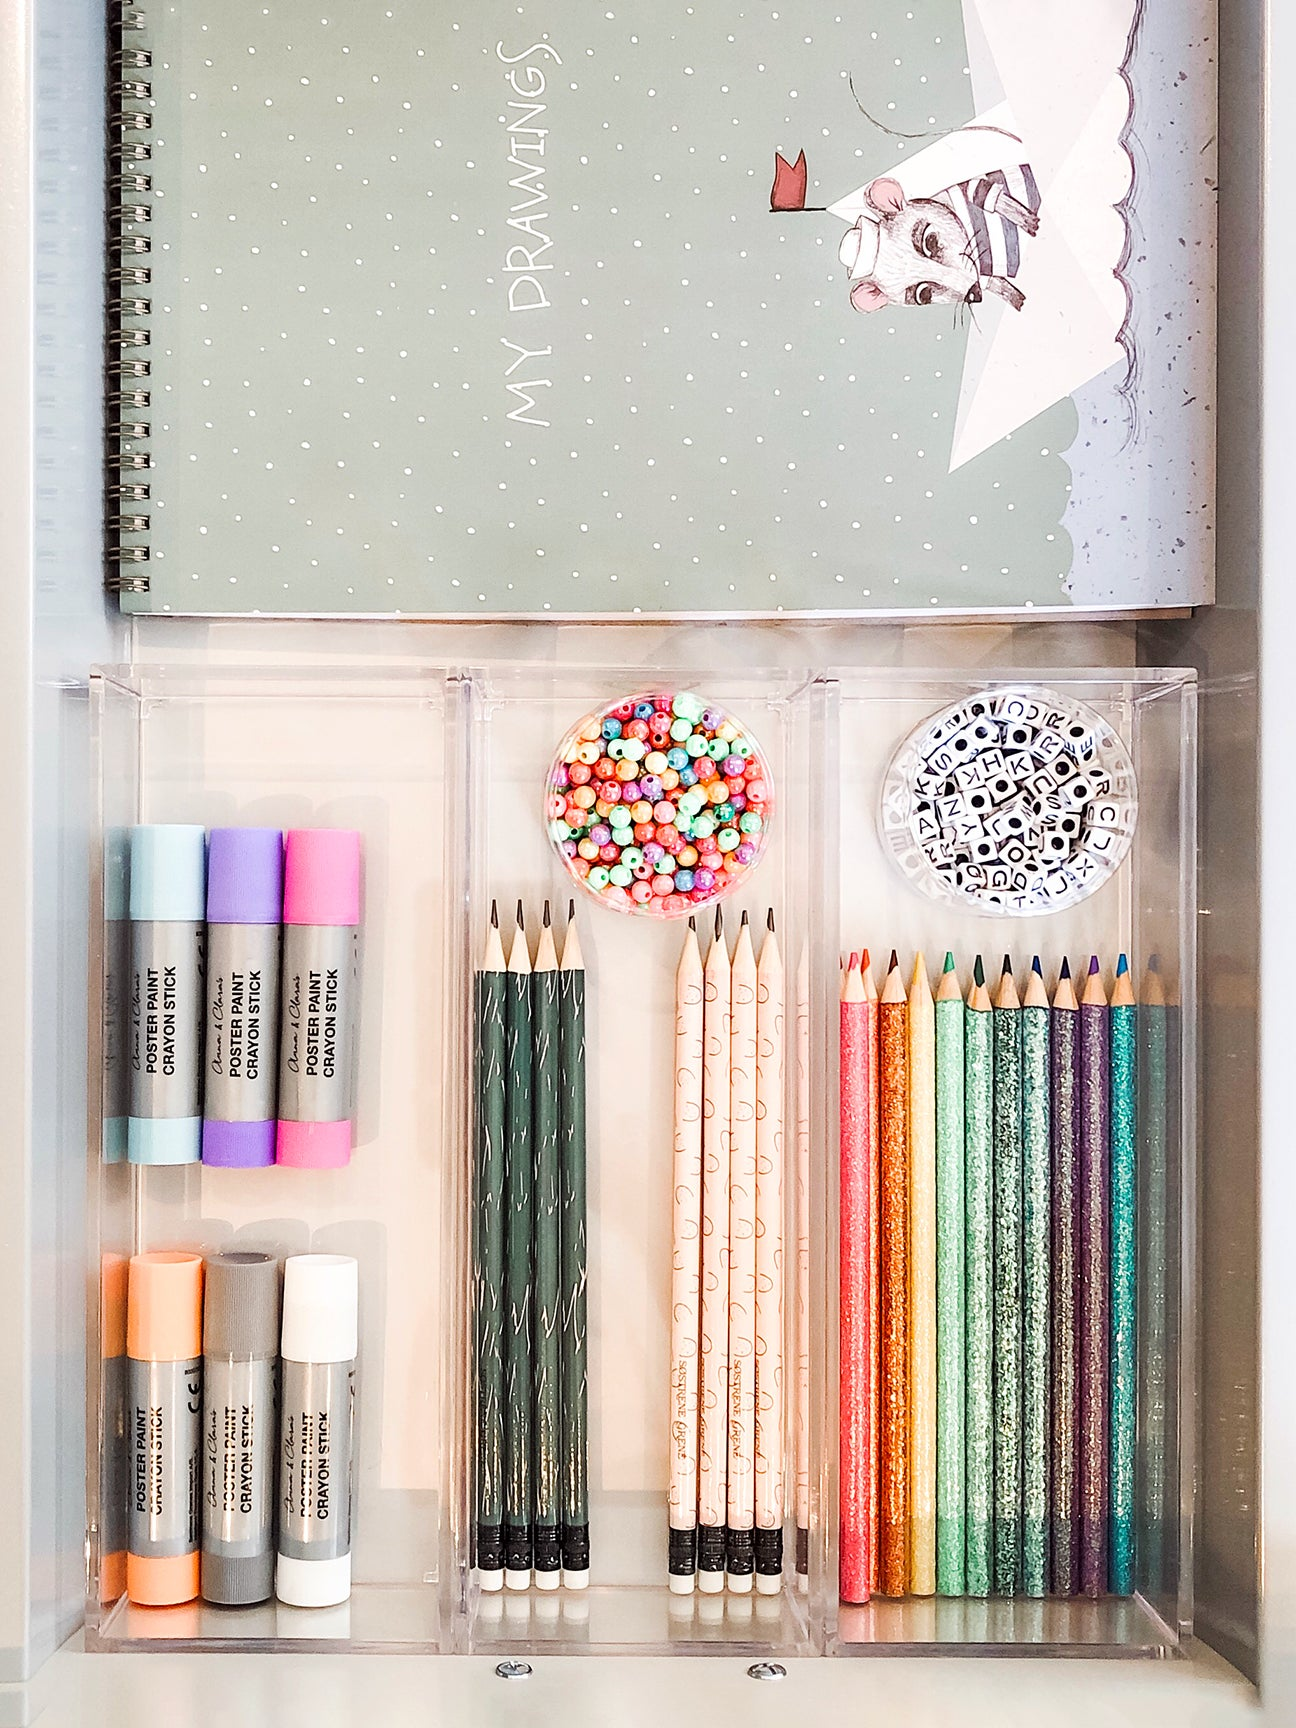 pencils lined up in a drawer